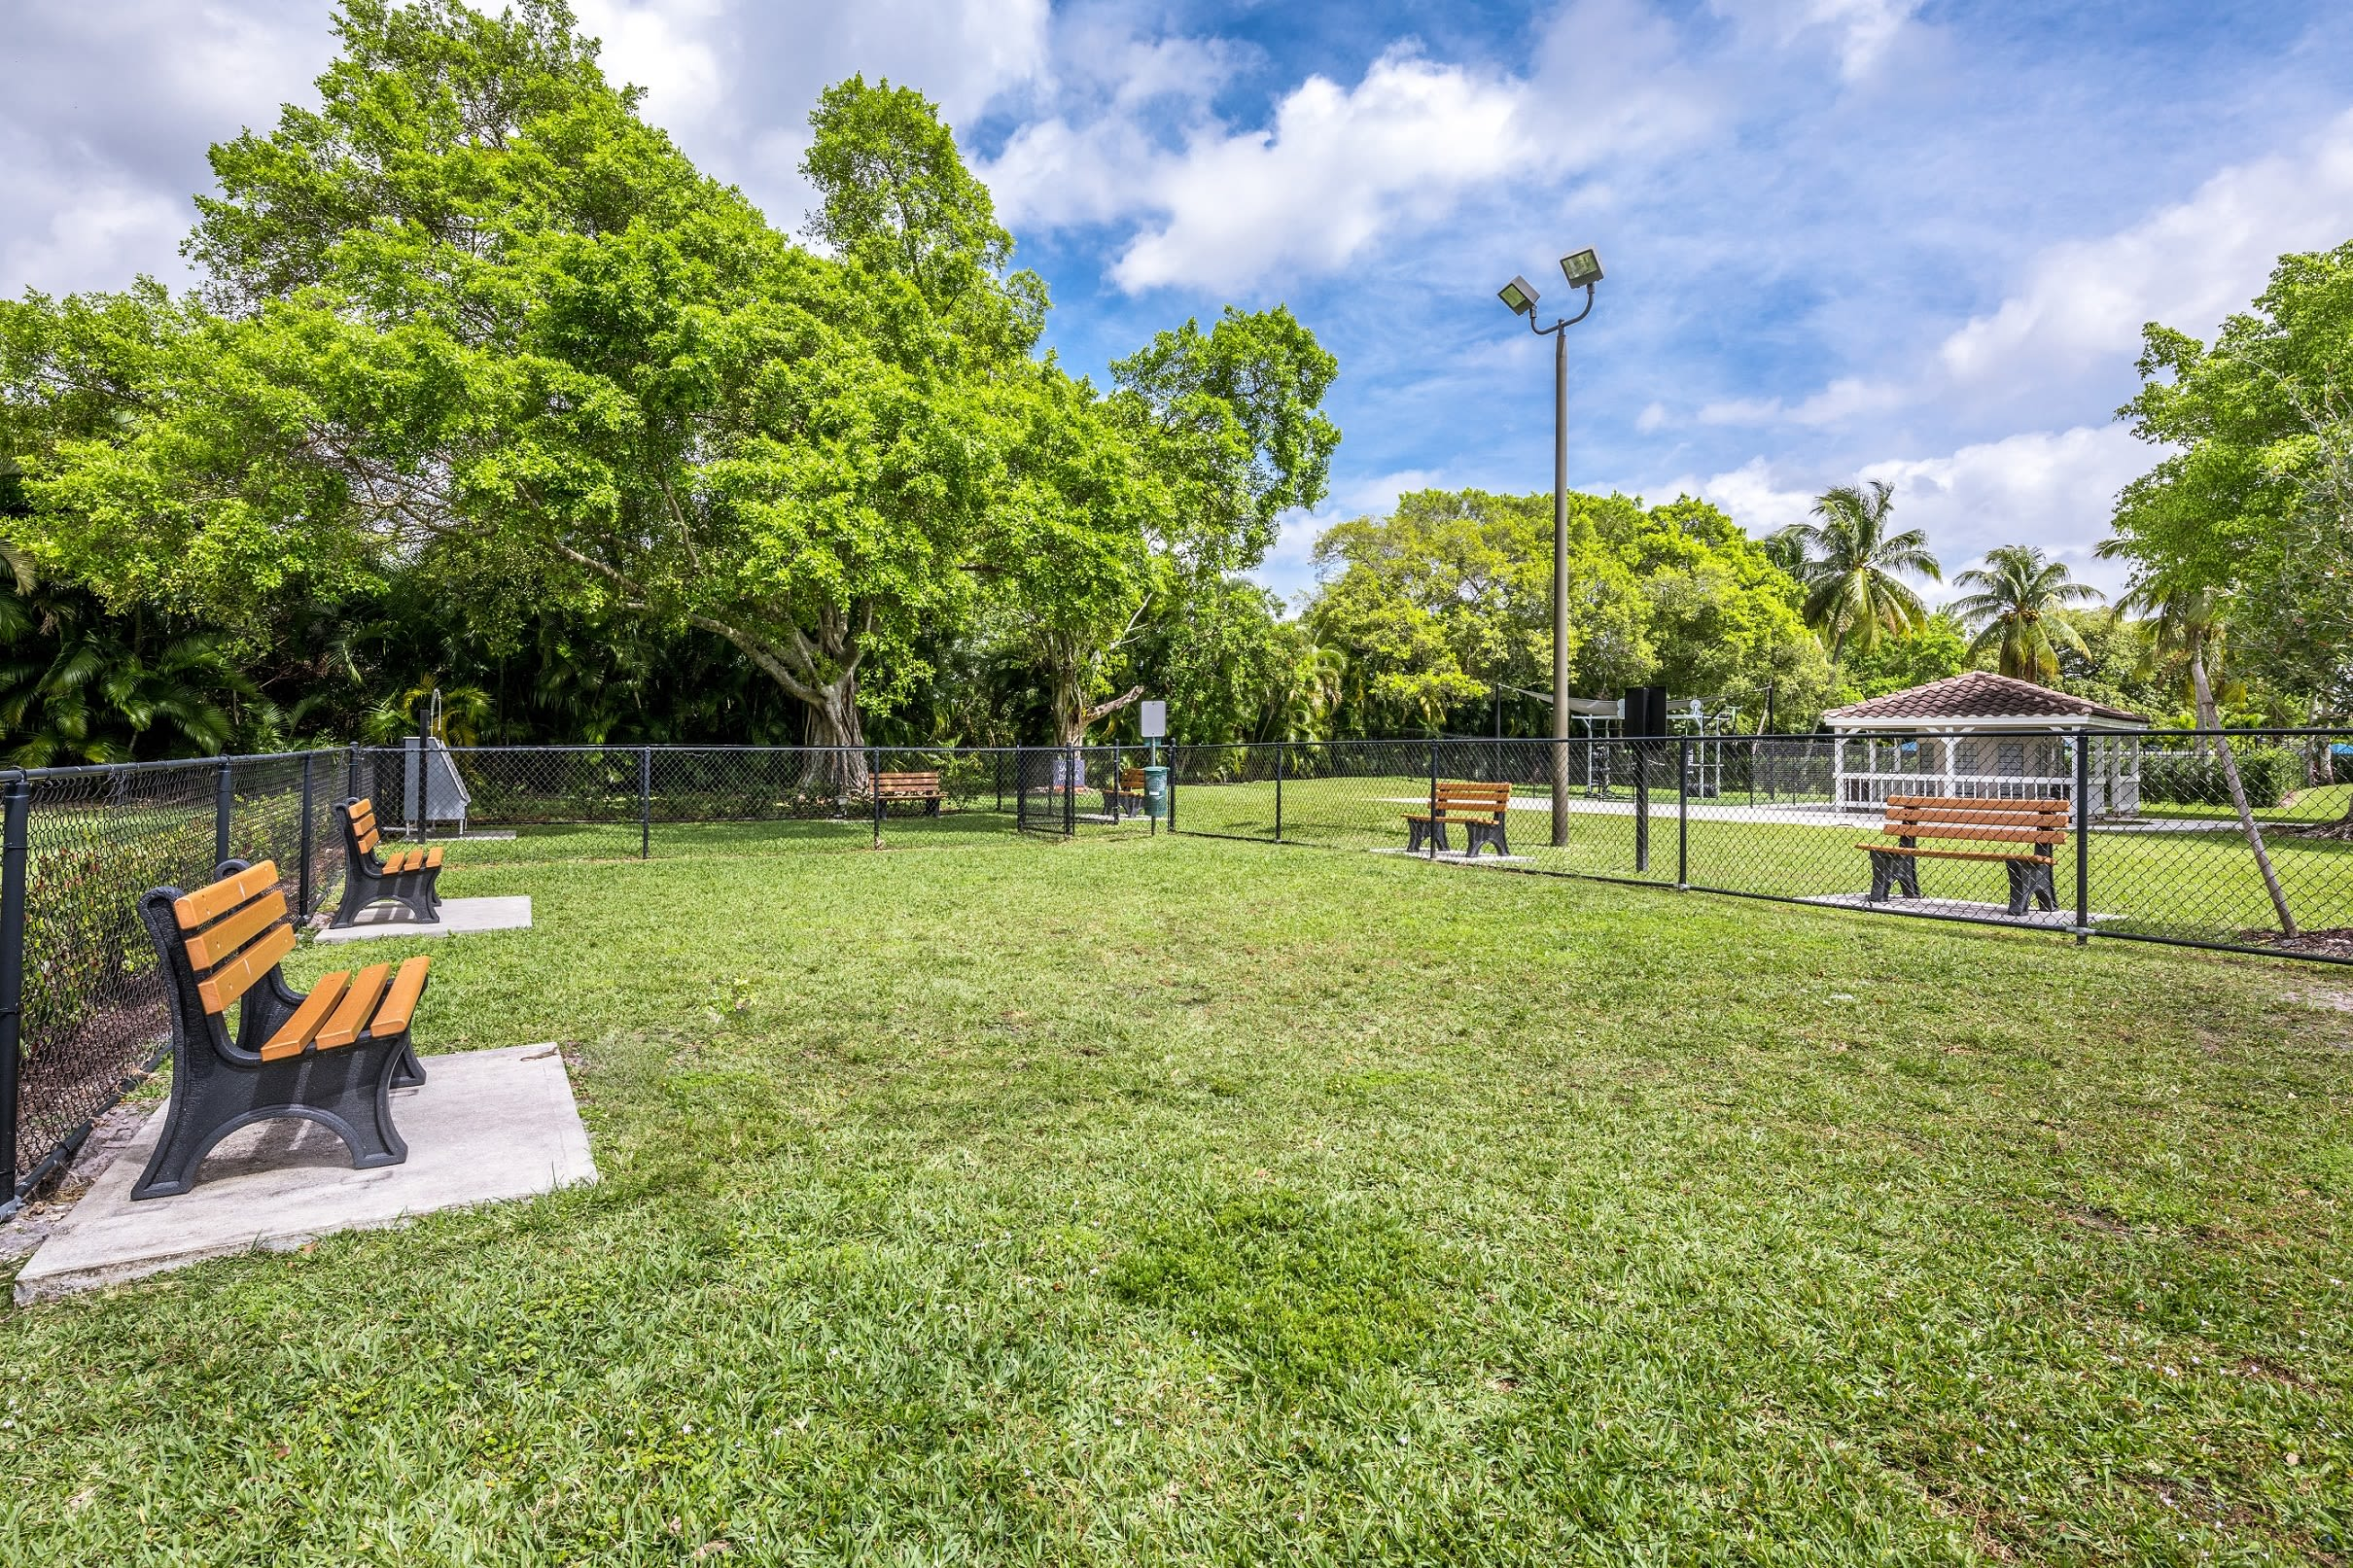 Benches and green space for dog park at Cielo Boca in Boca Raton, Florida